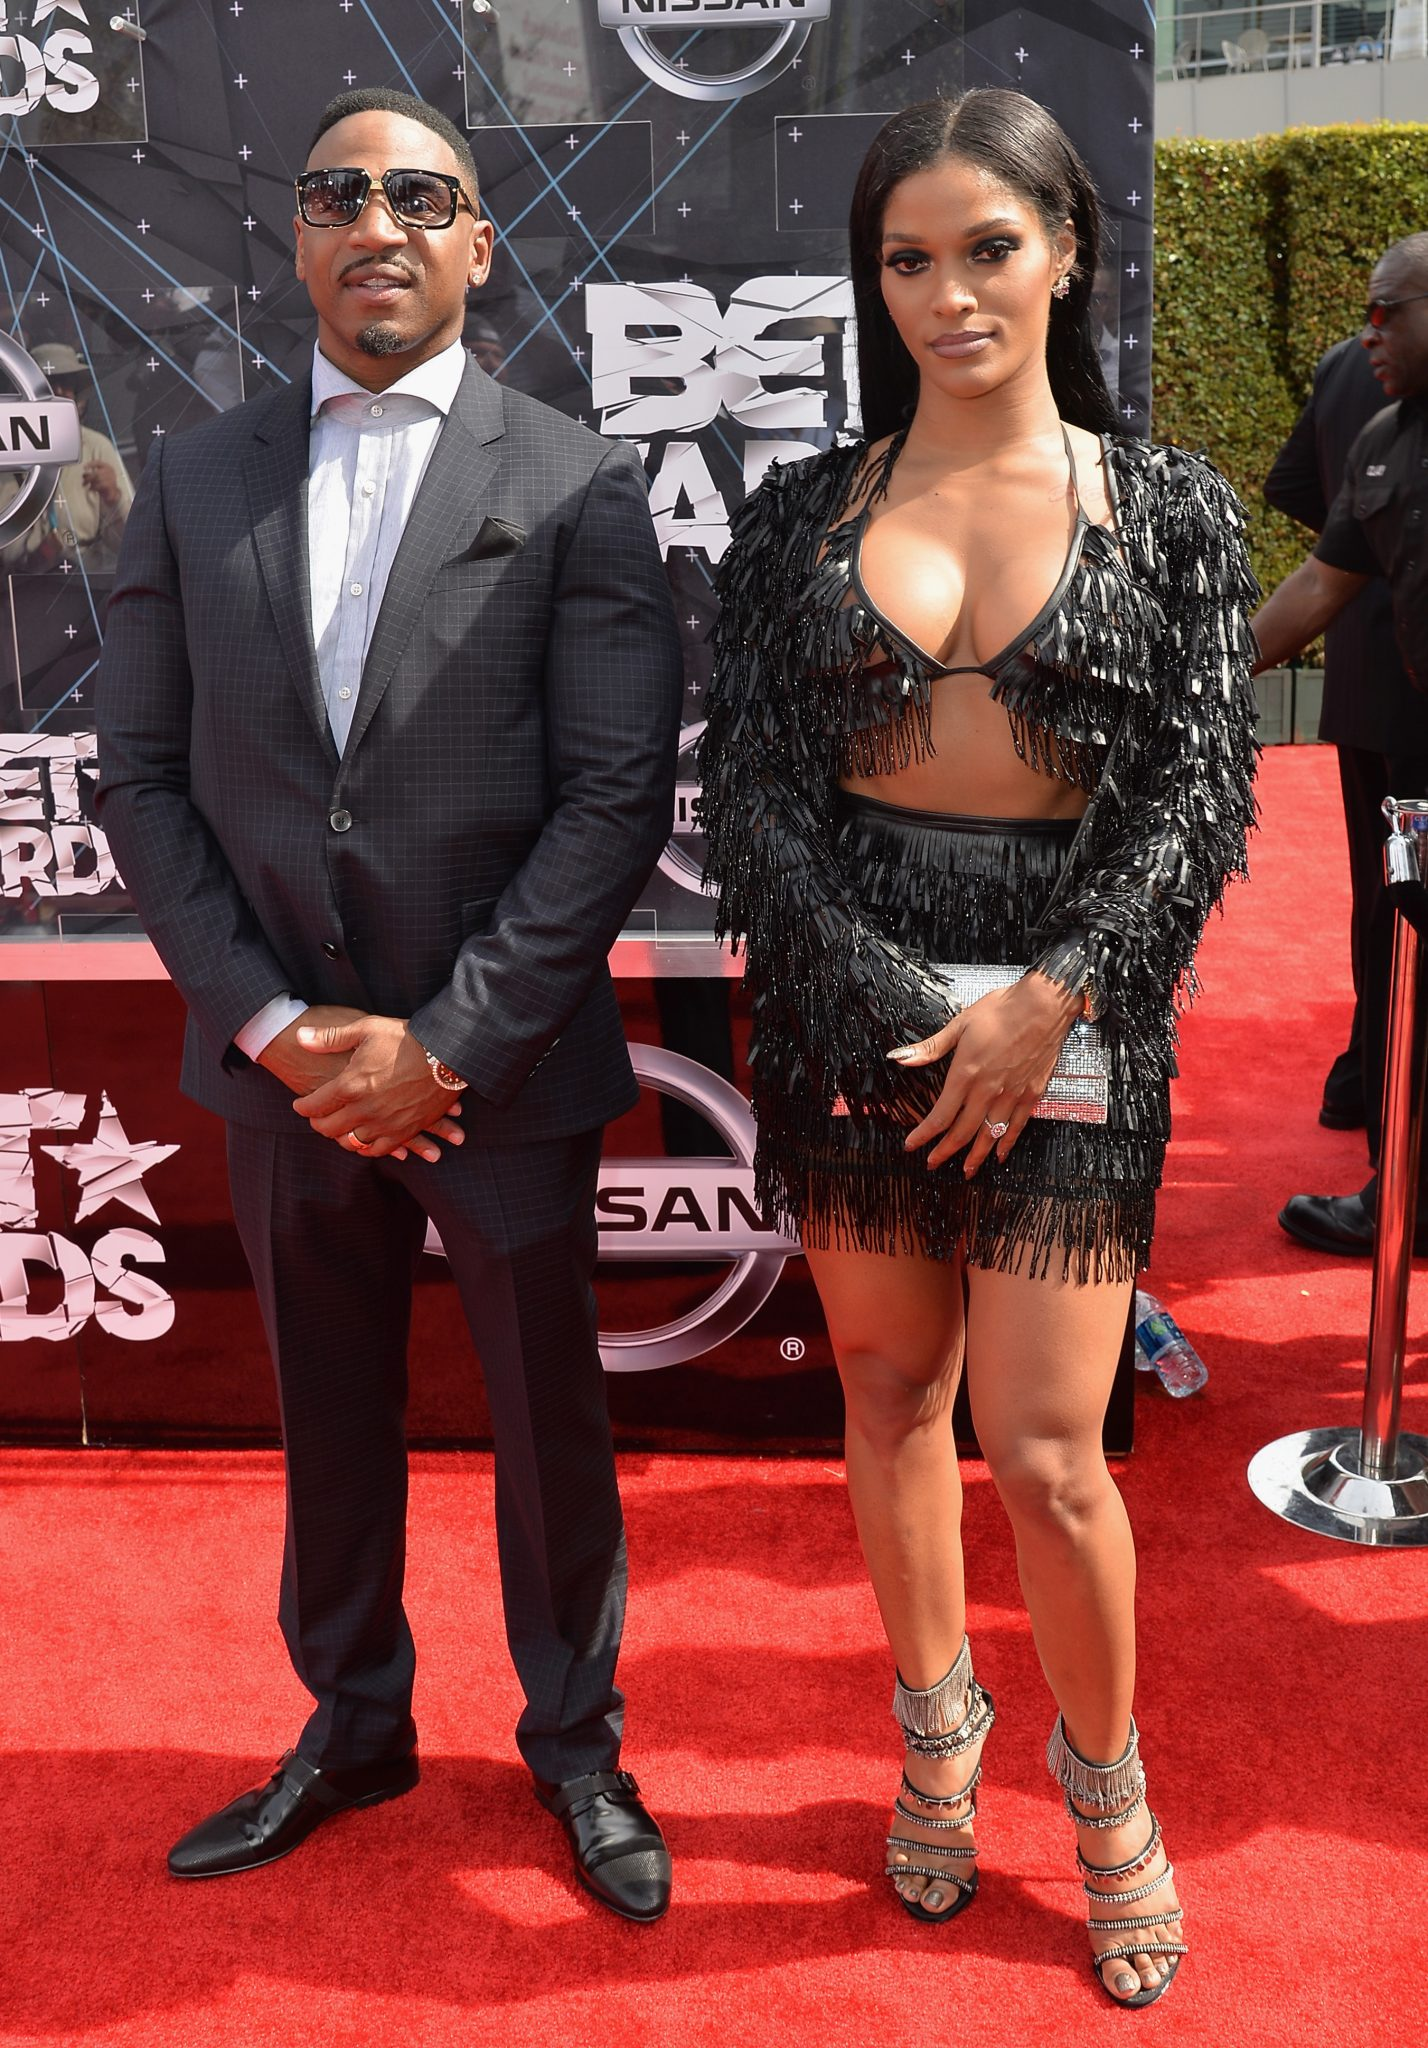 TWT TEA: Joseline Hernandez & Stevie J At The BET Awards